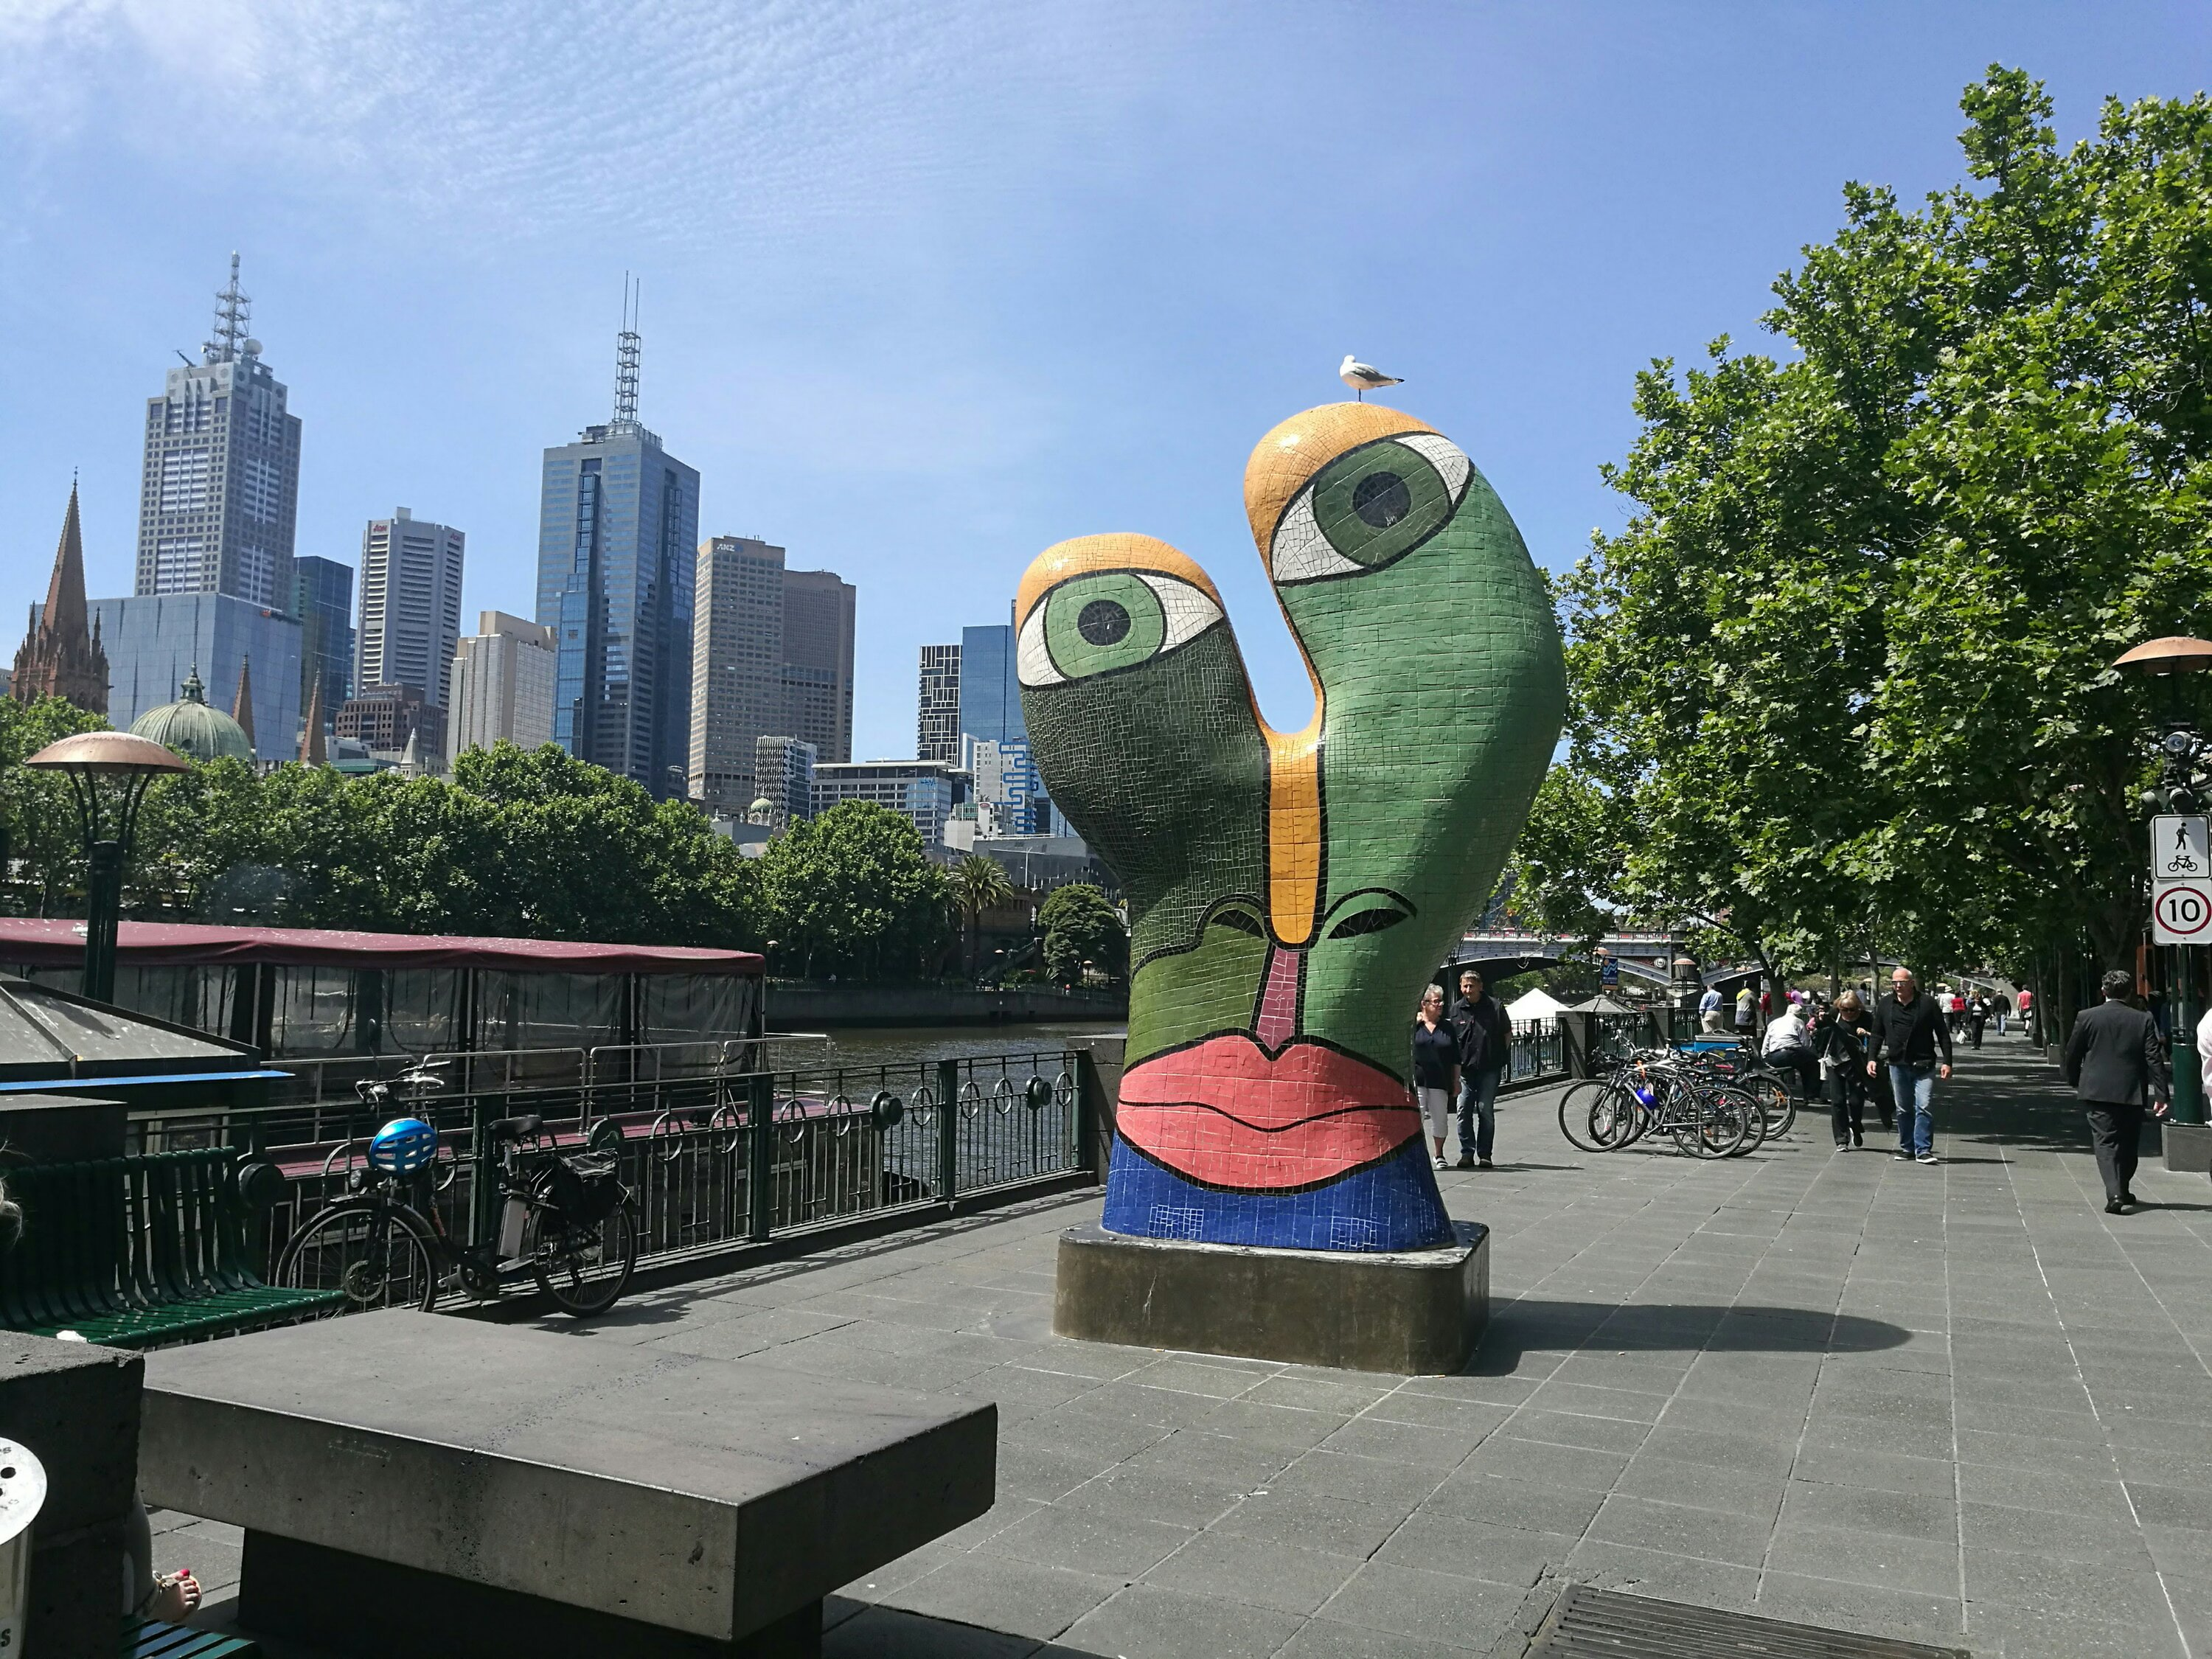 Interesting artwork in Melbourne